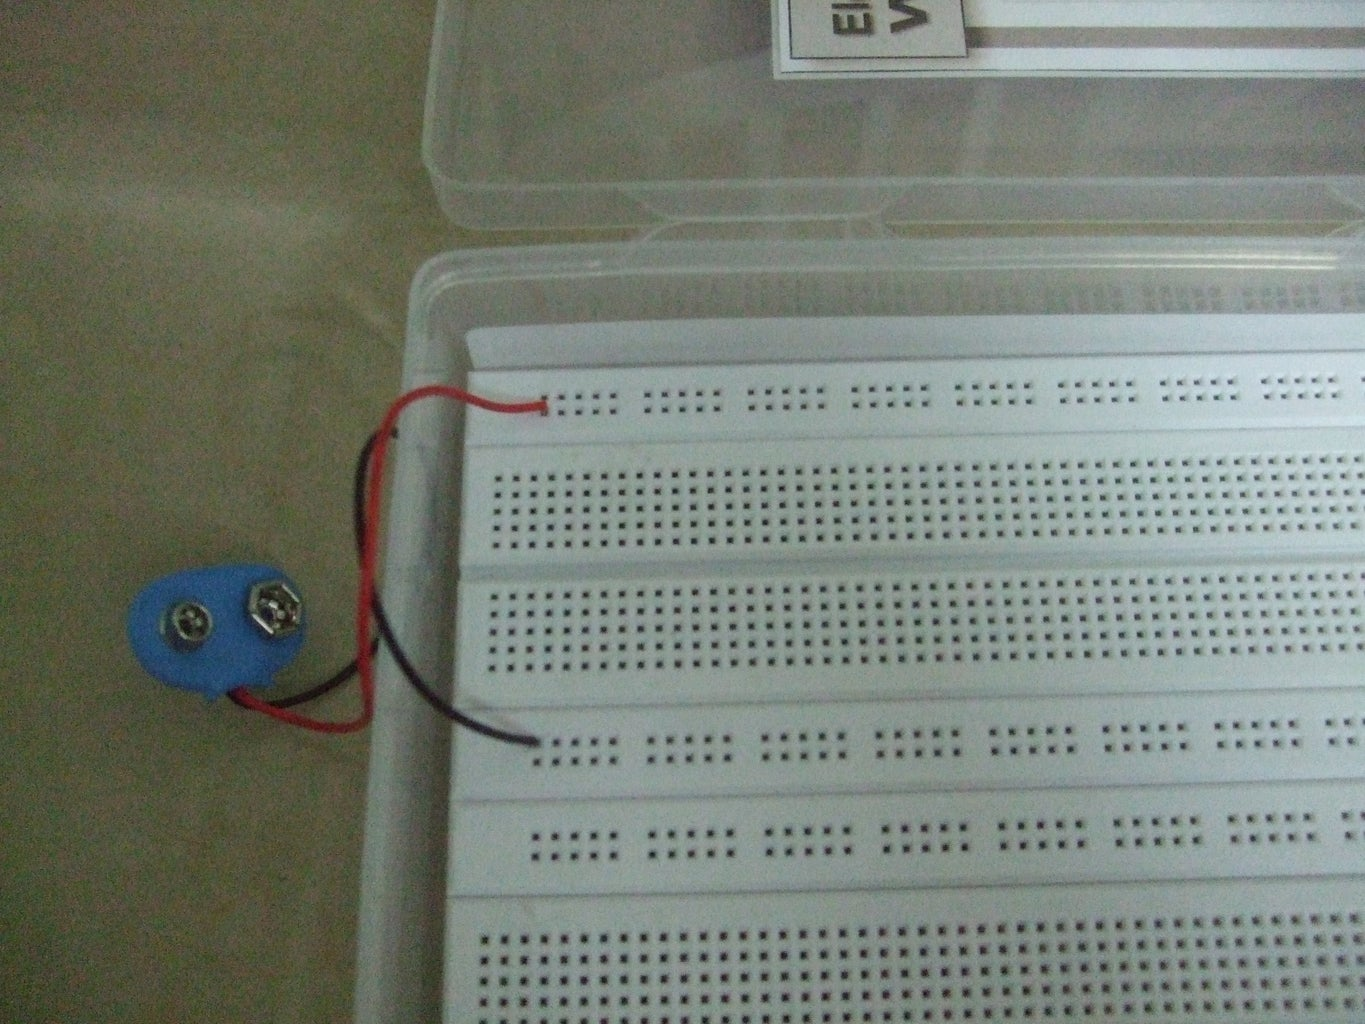 Connect Your Battery Connector to the Sides of the Breadboard...